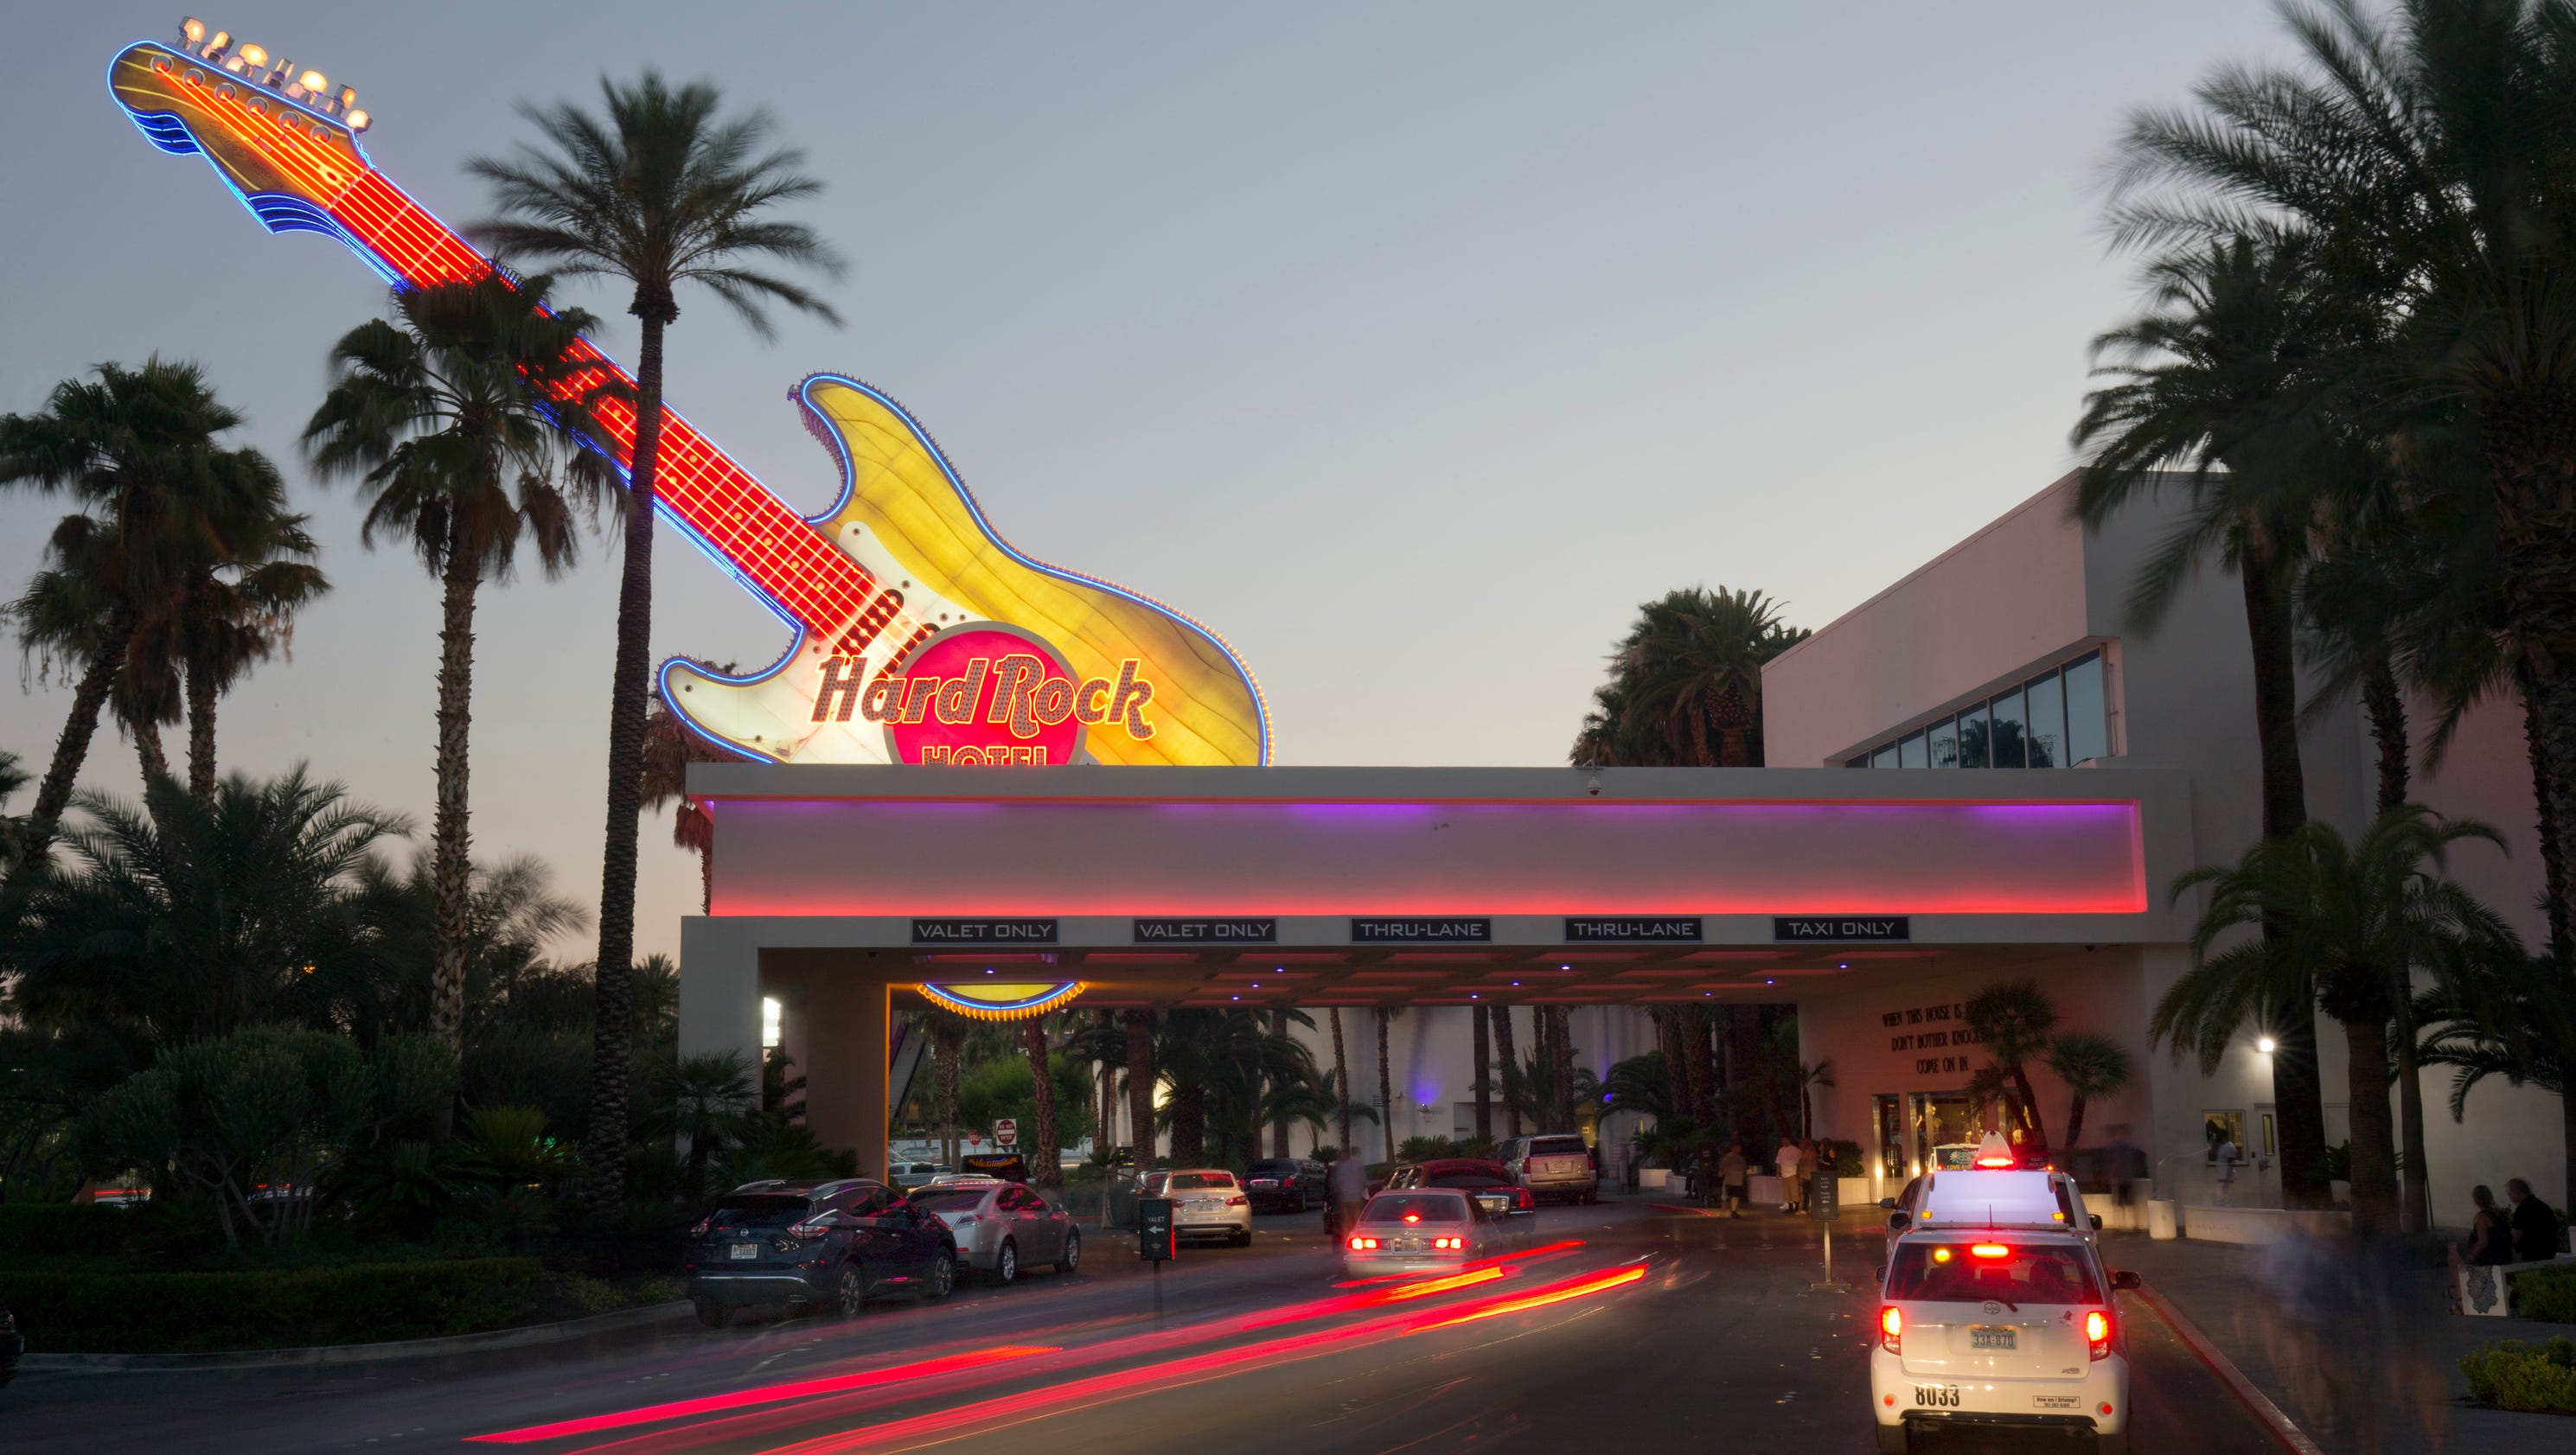 How To Get Las Vegas Hotel Deals